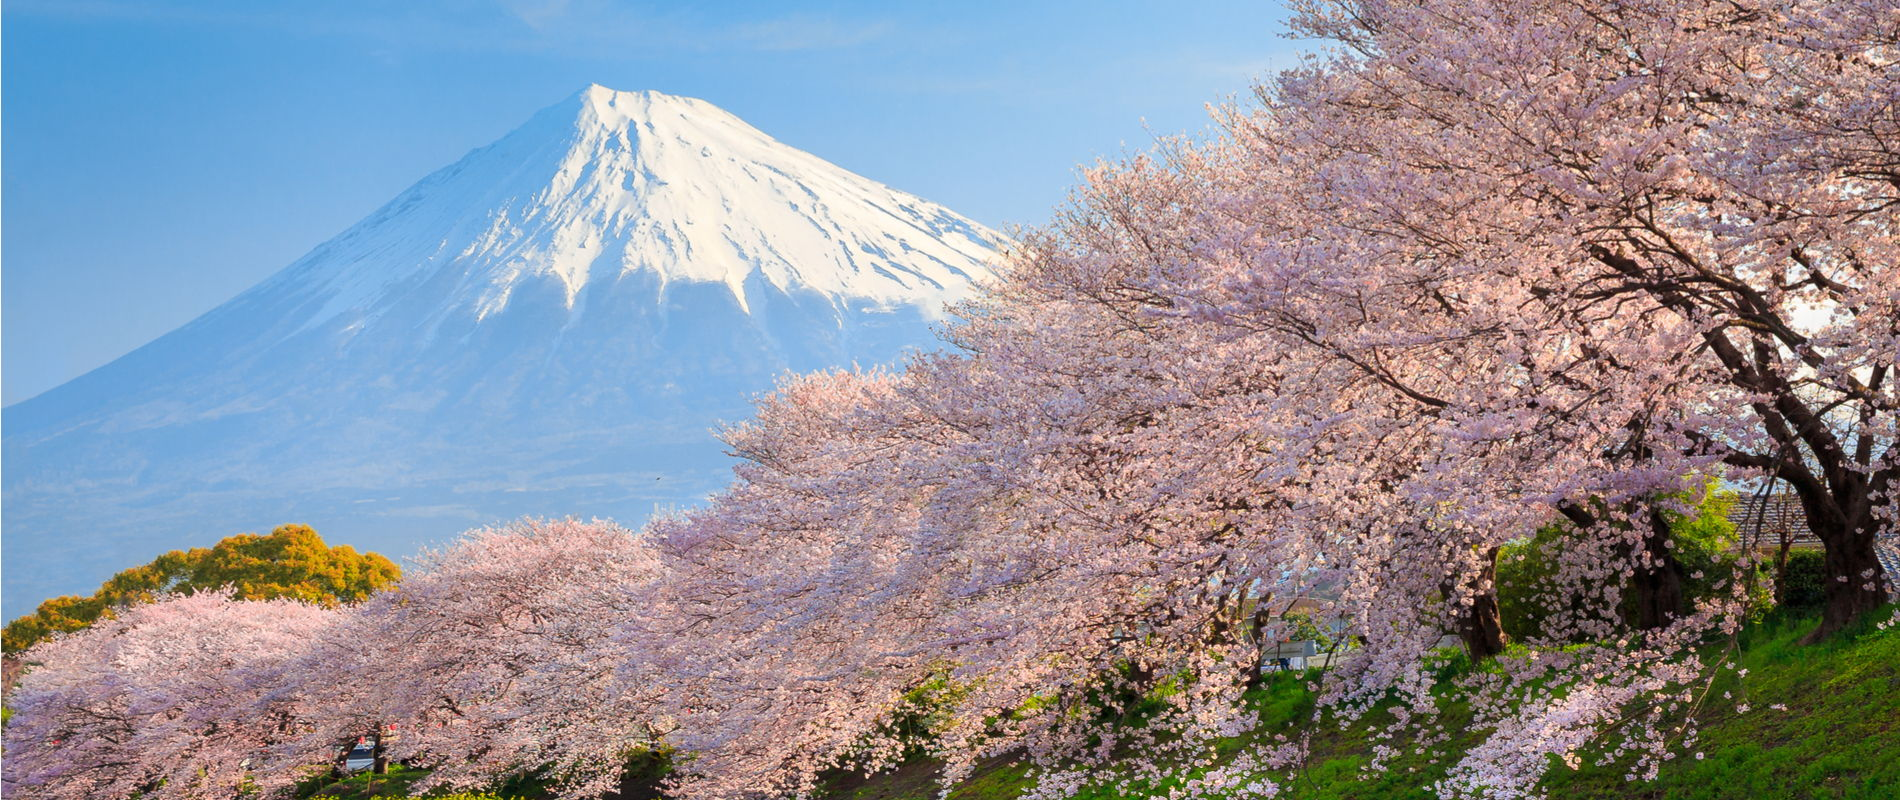 Sakura and Mountain Fuji